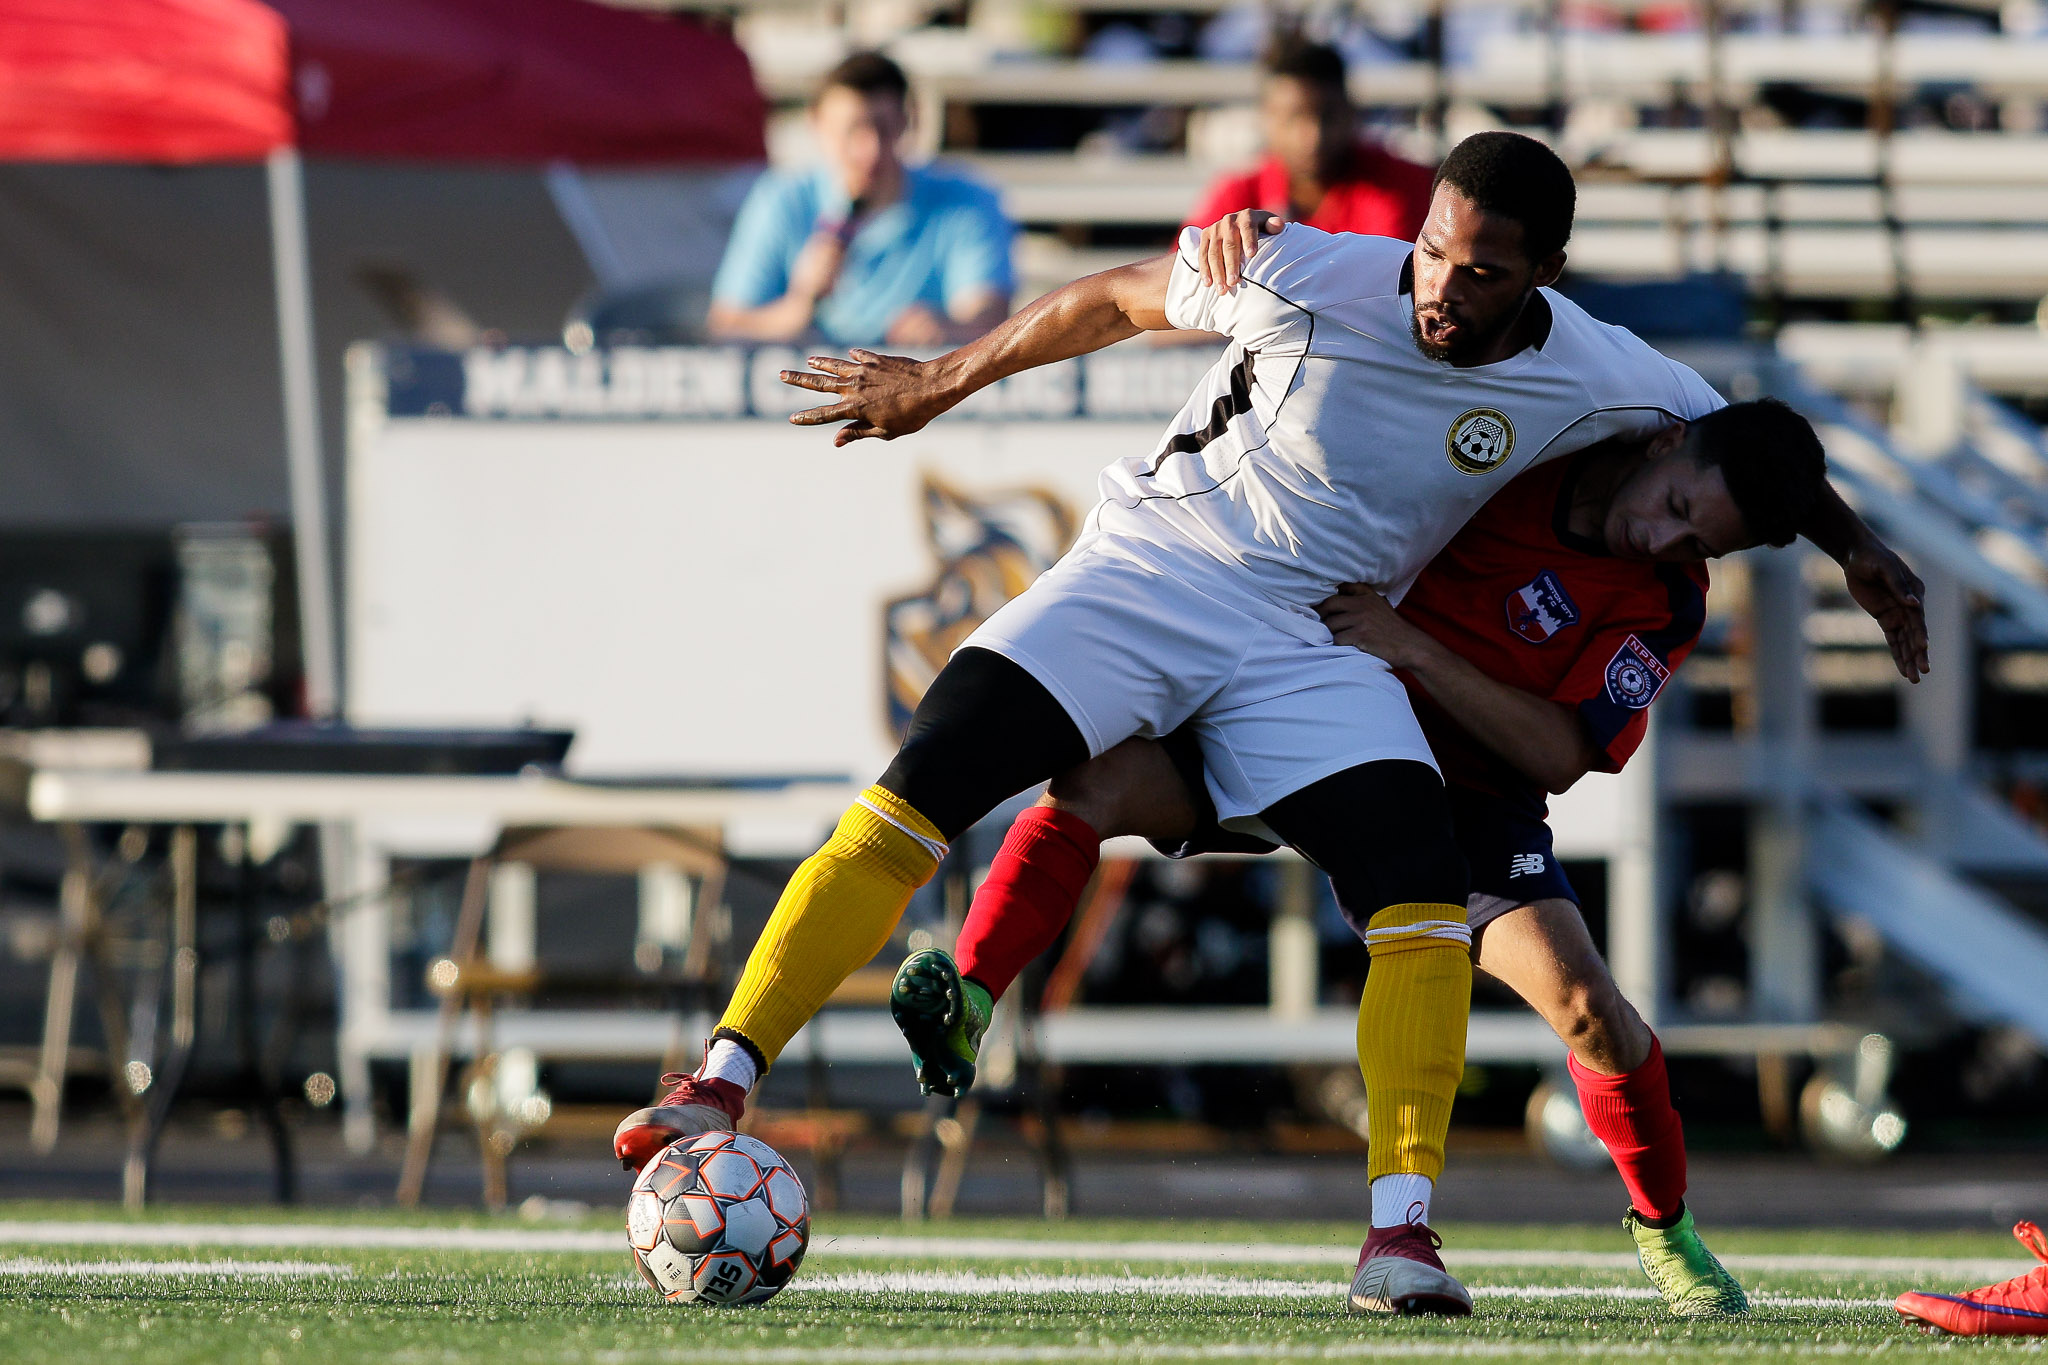 The teams compete in the North Atlantic Conference of the NPSL, a region that plays a physical brand of soccer. (c) Burt Granofsky